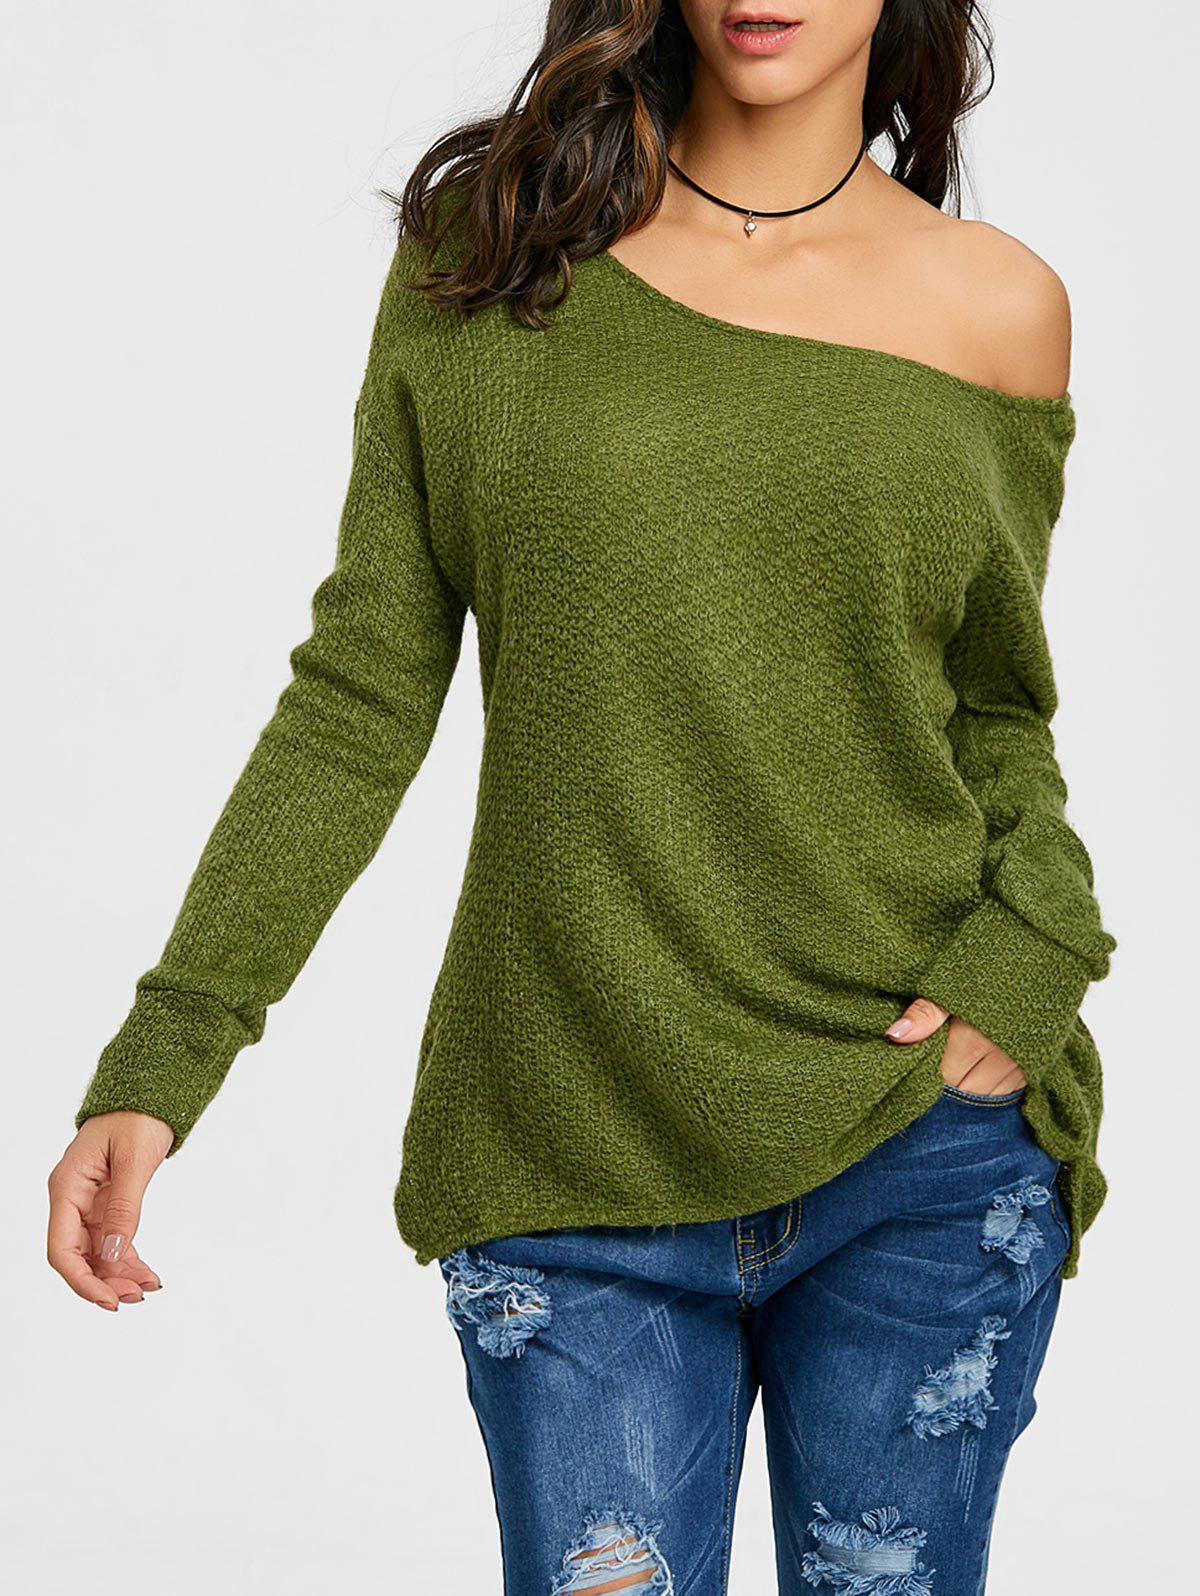 Discount Skew Neck Tunic Sweater